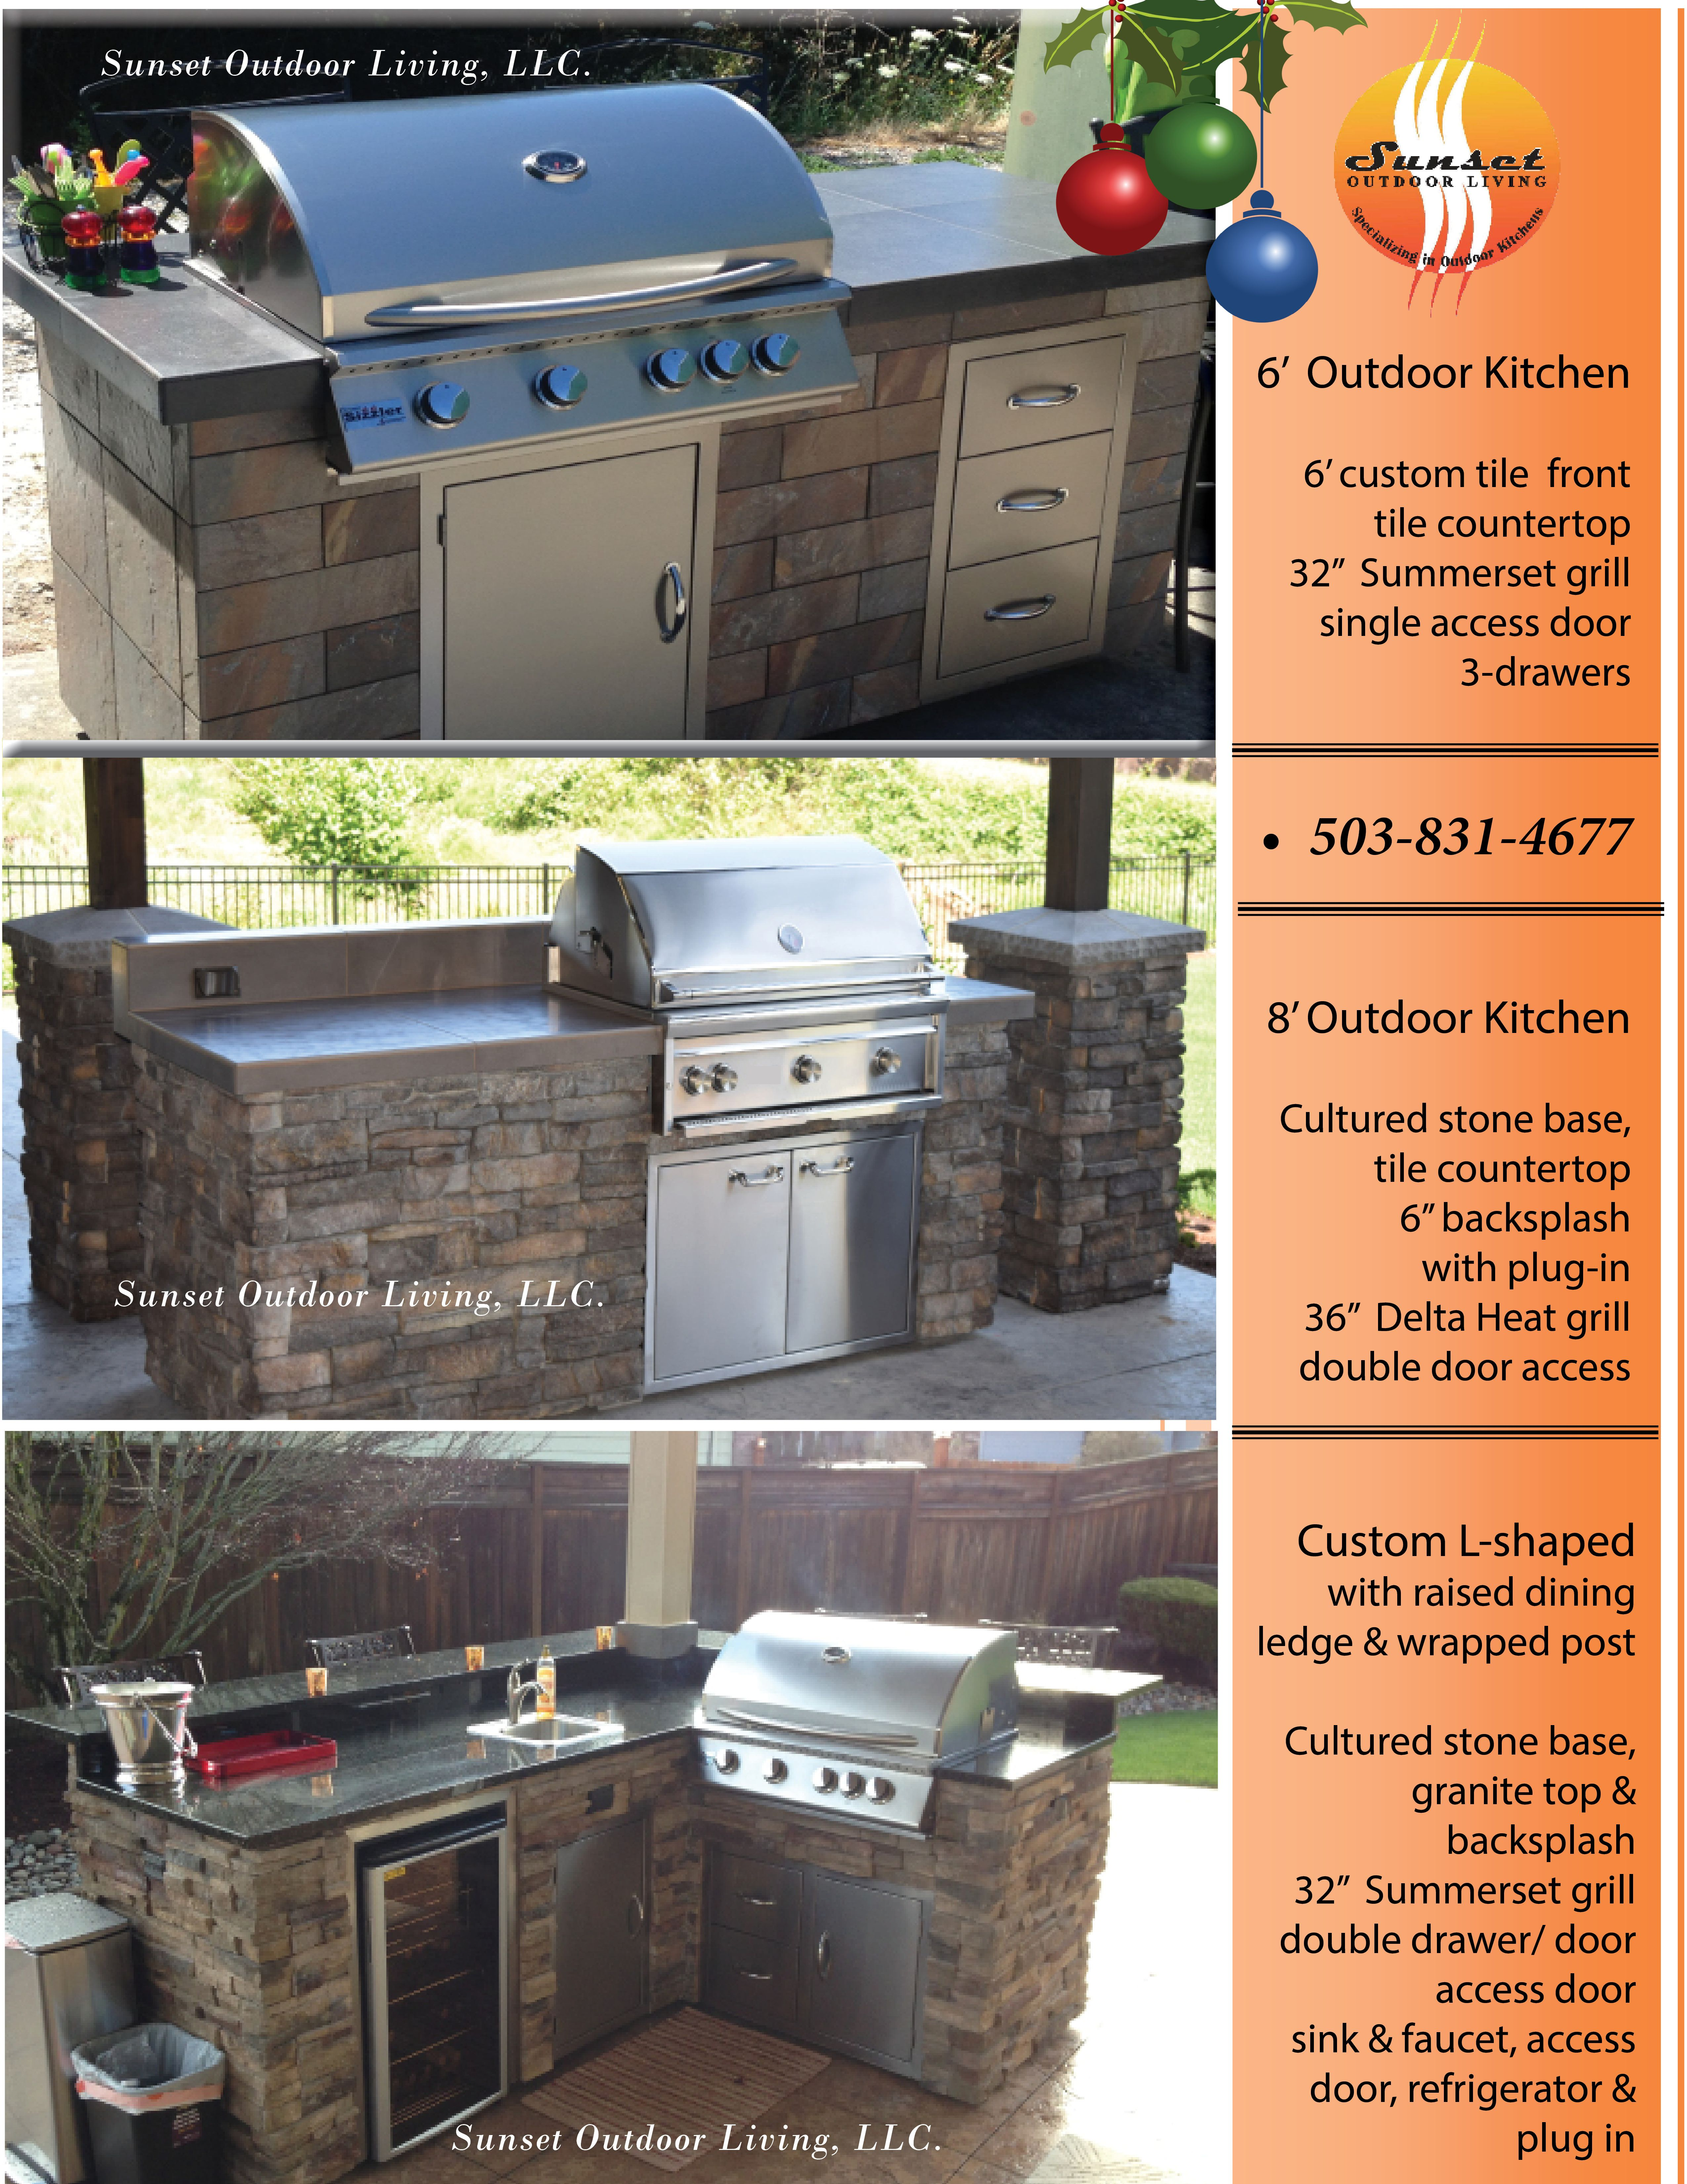 Christmas List With Images Luxury Outdoor Kitchen Outdoor Living Design Outdoor Kitchen